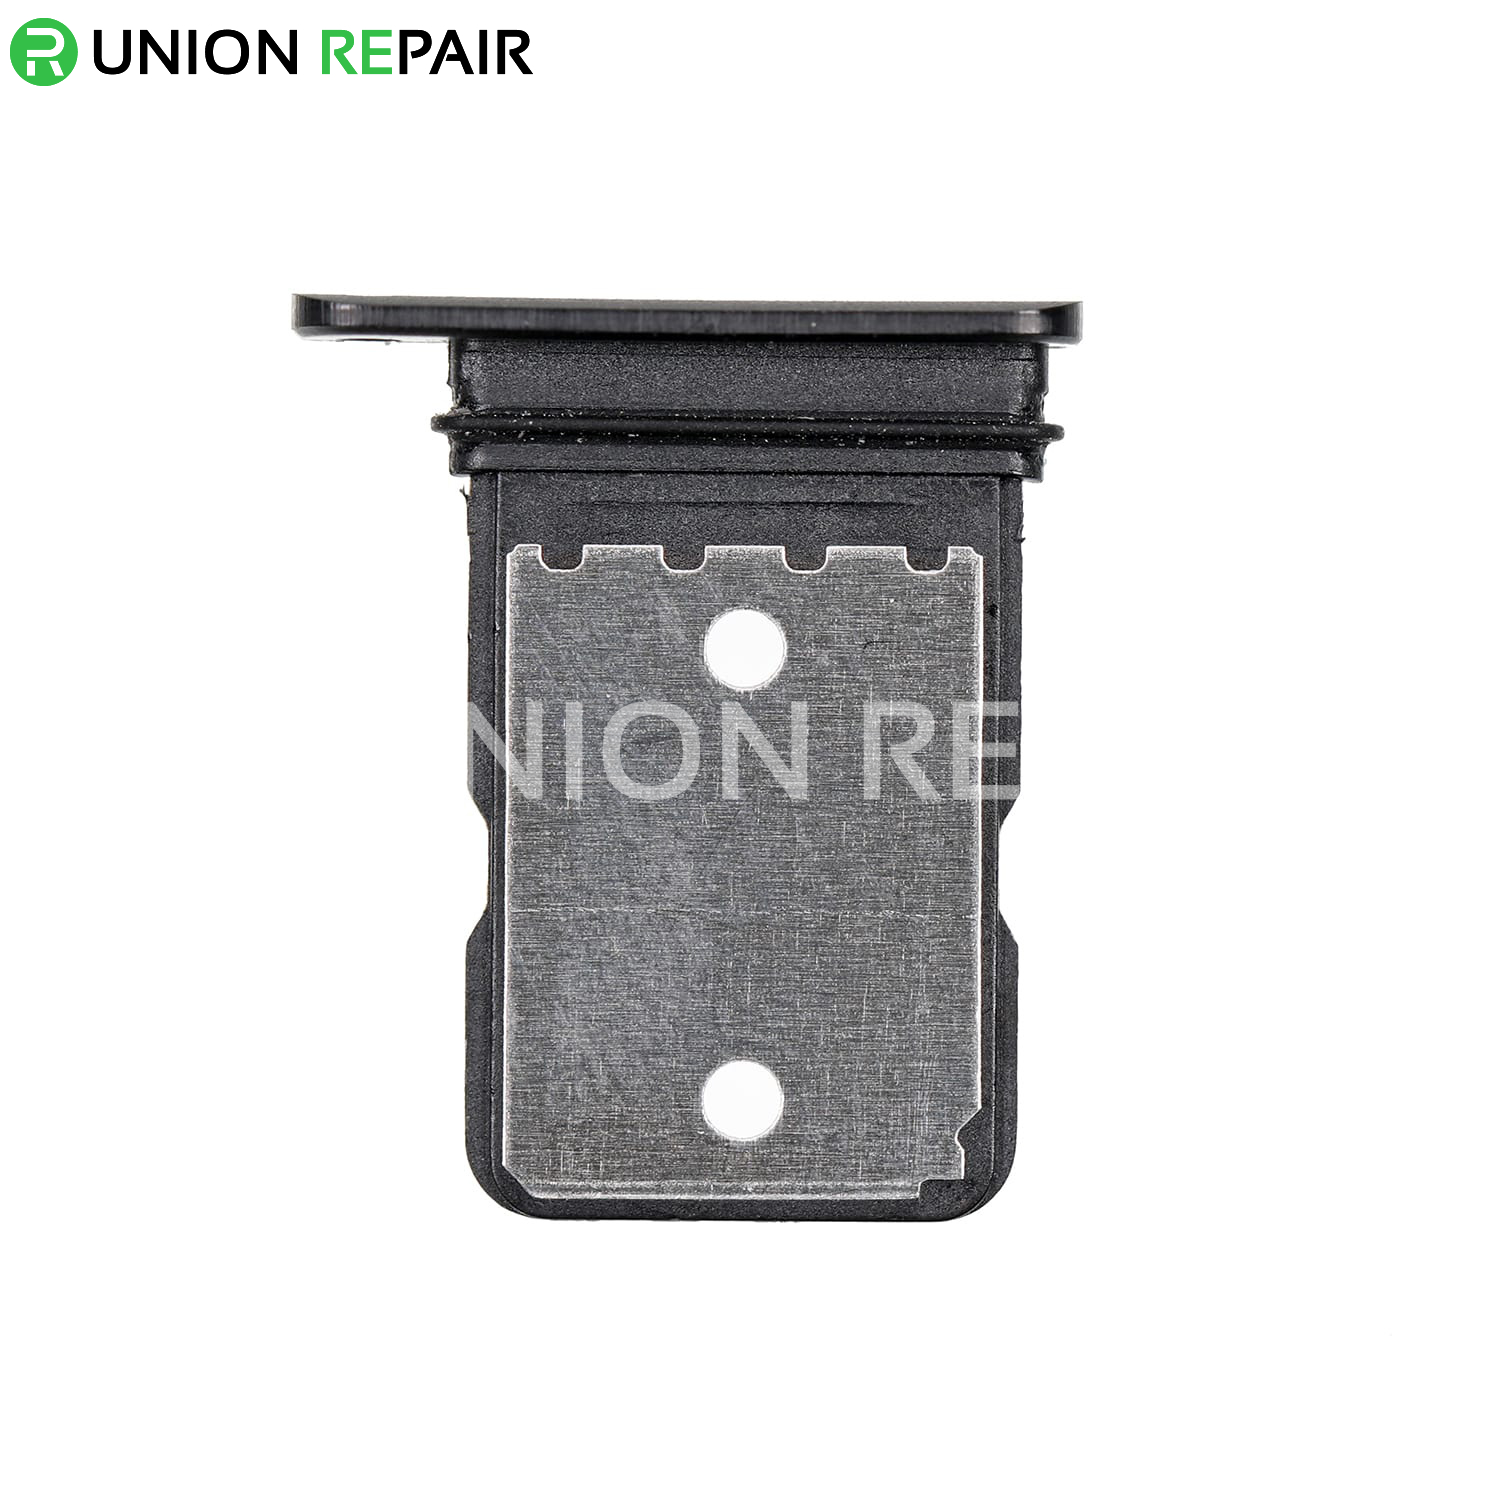 Replacement for Google Pixel 4 XL SIM Cars Tray - Black